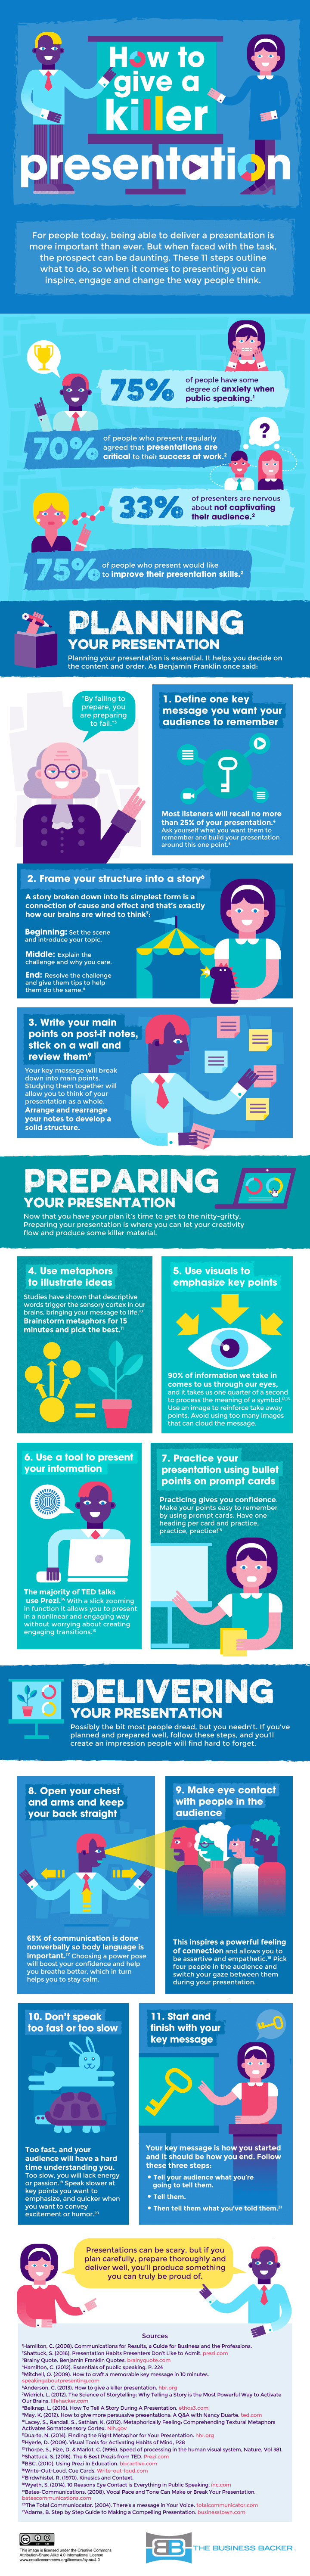 How to Give a Killer Presentation Infographic